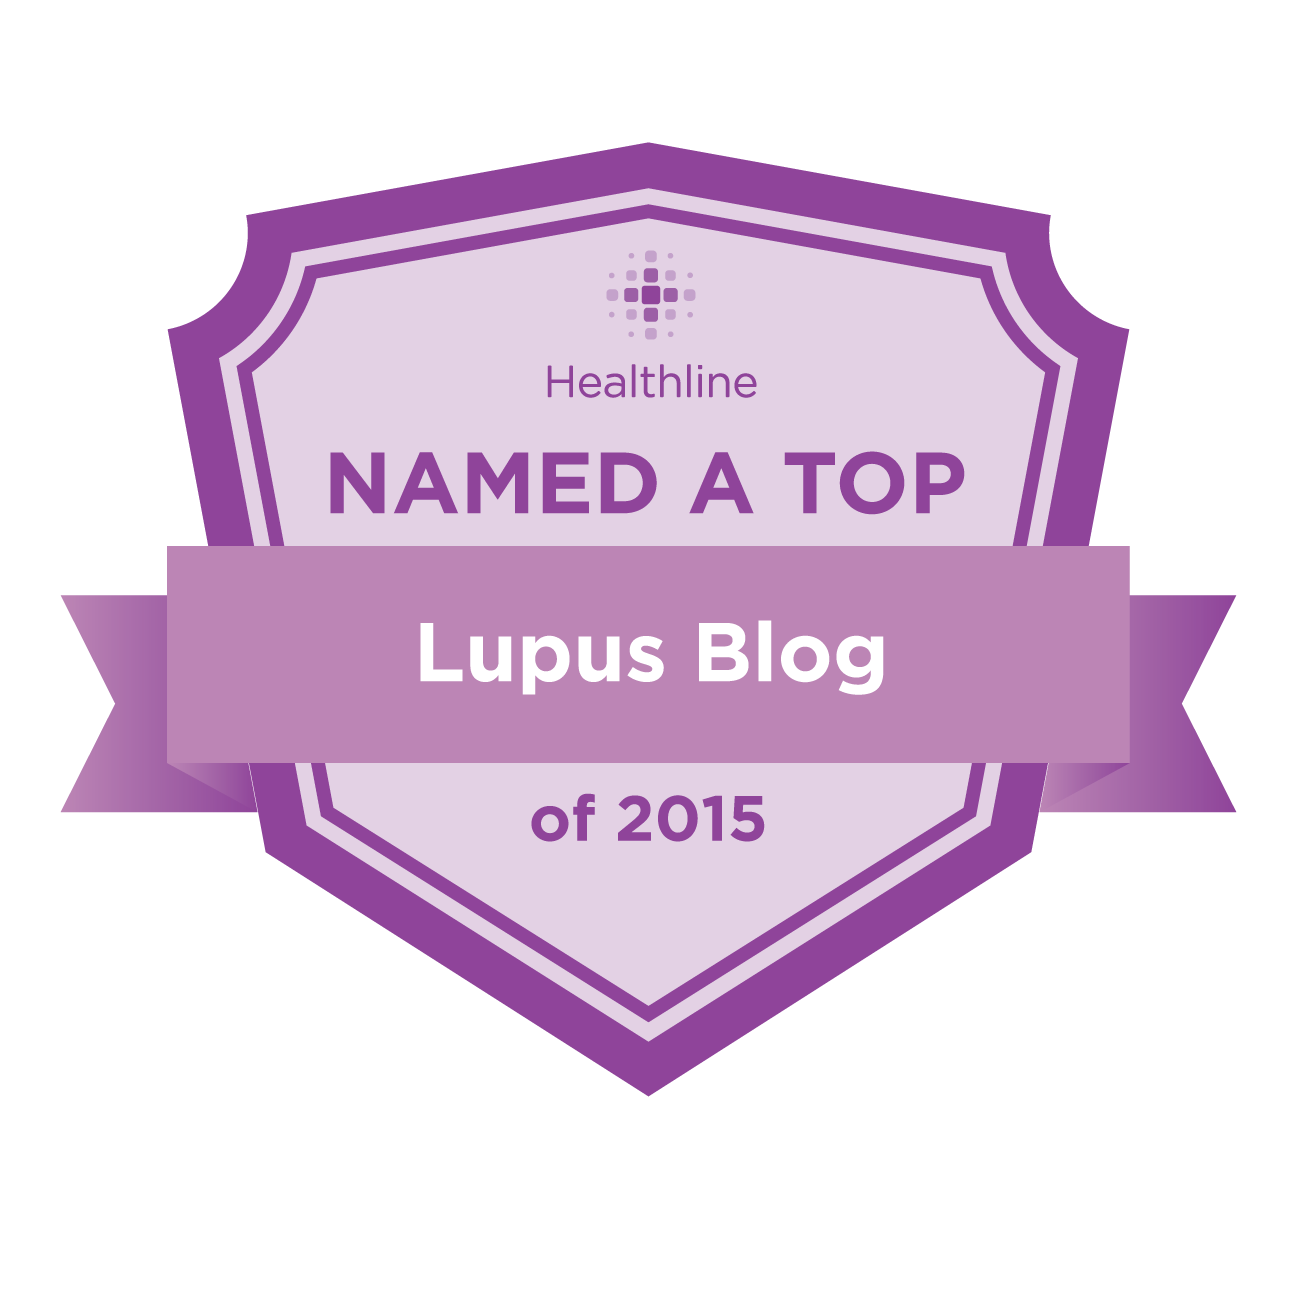 lupus best blogs badge